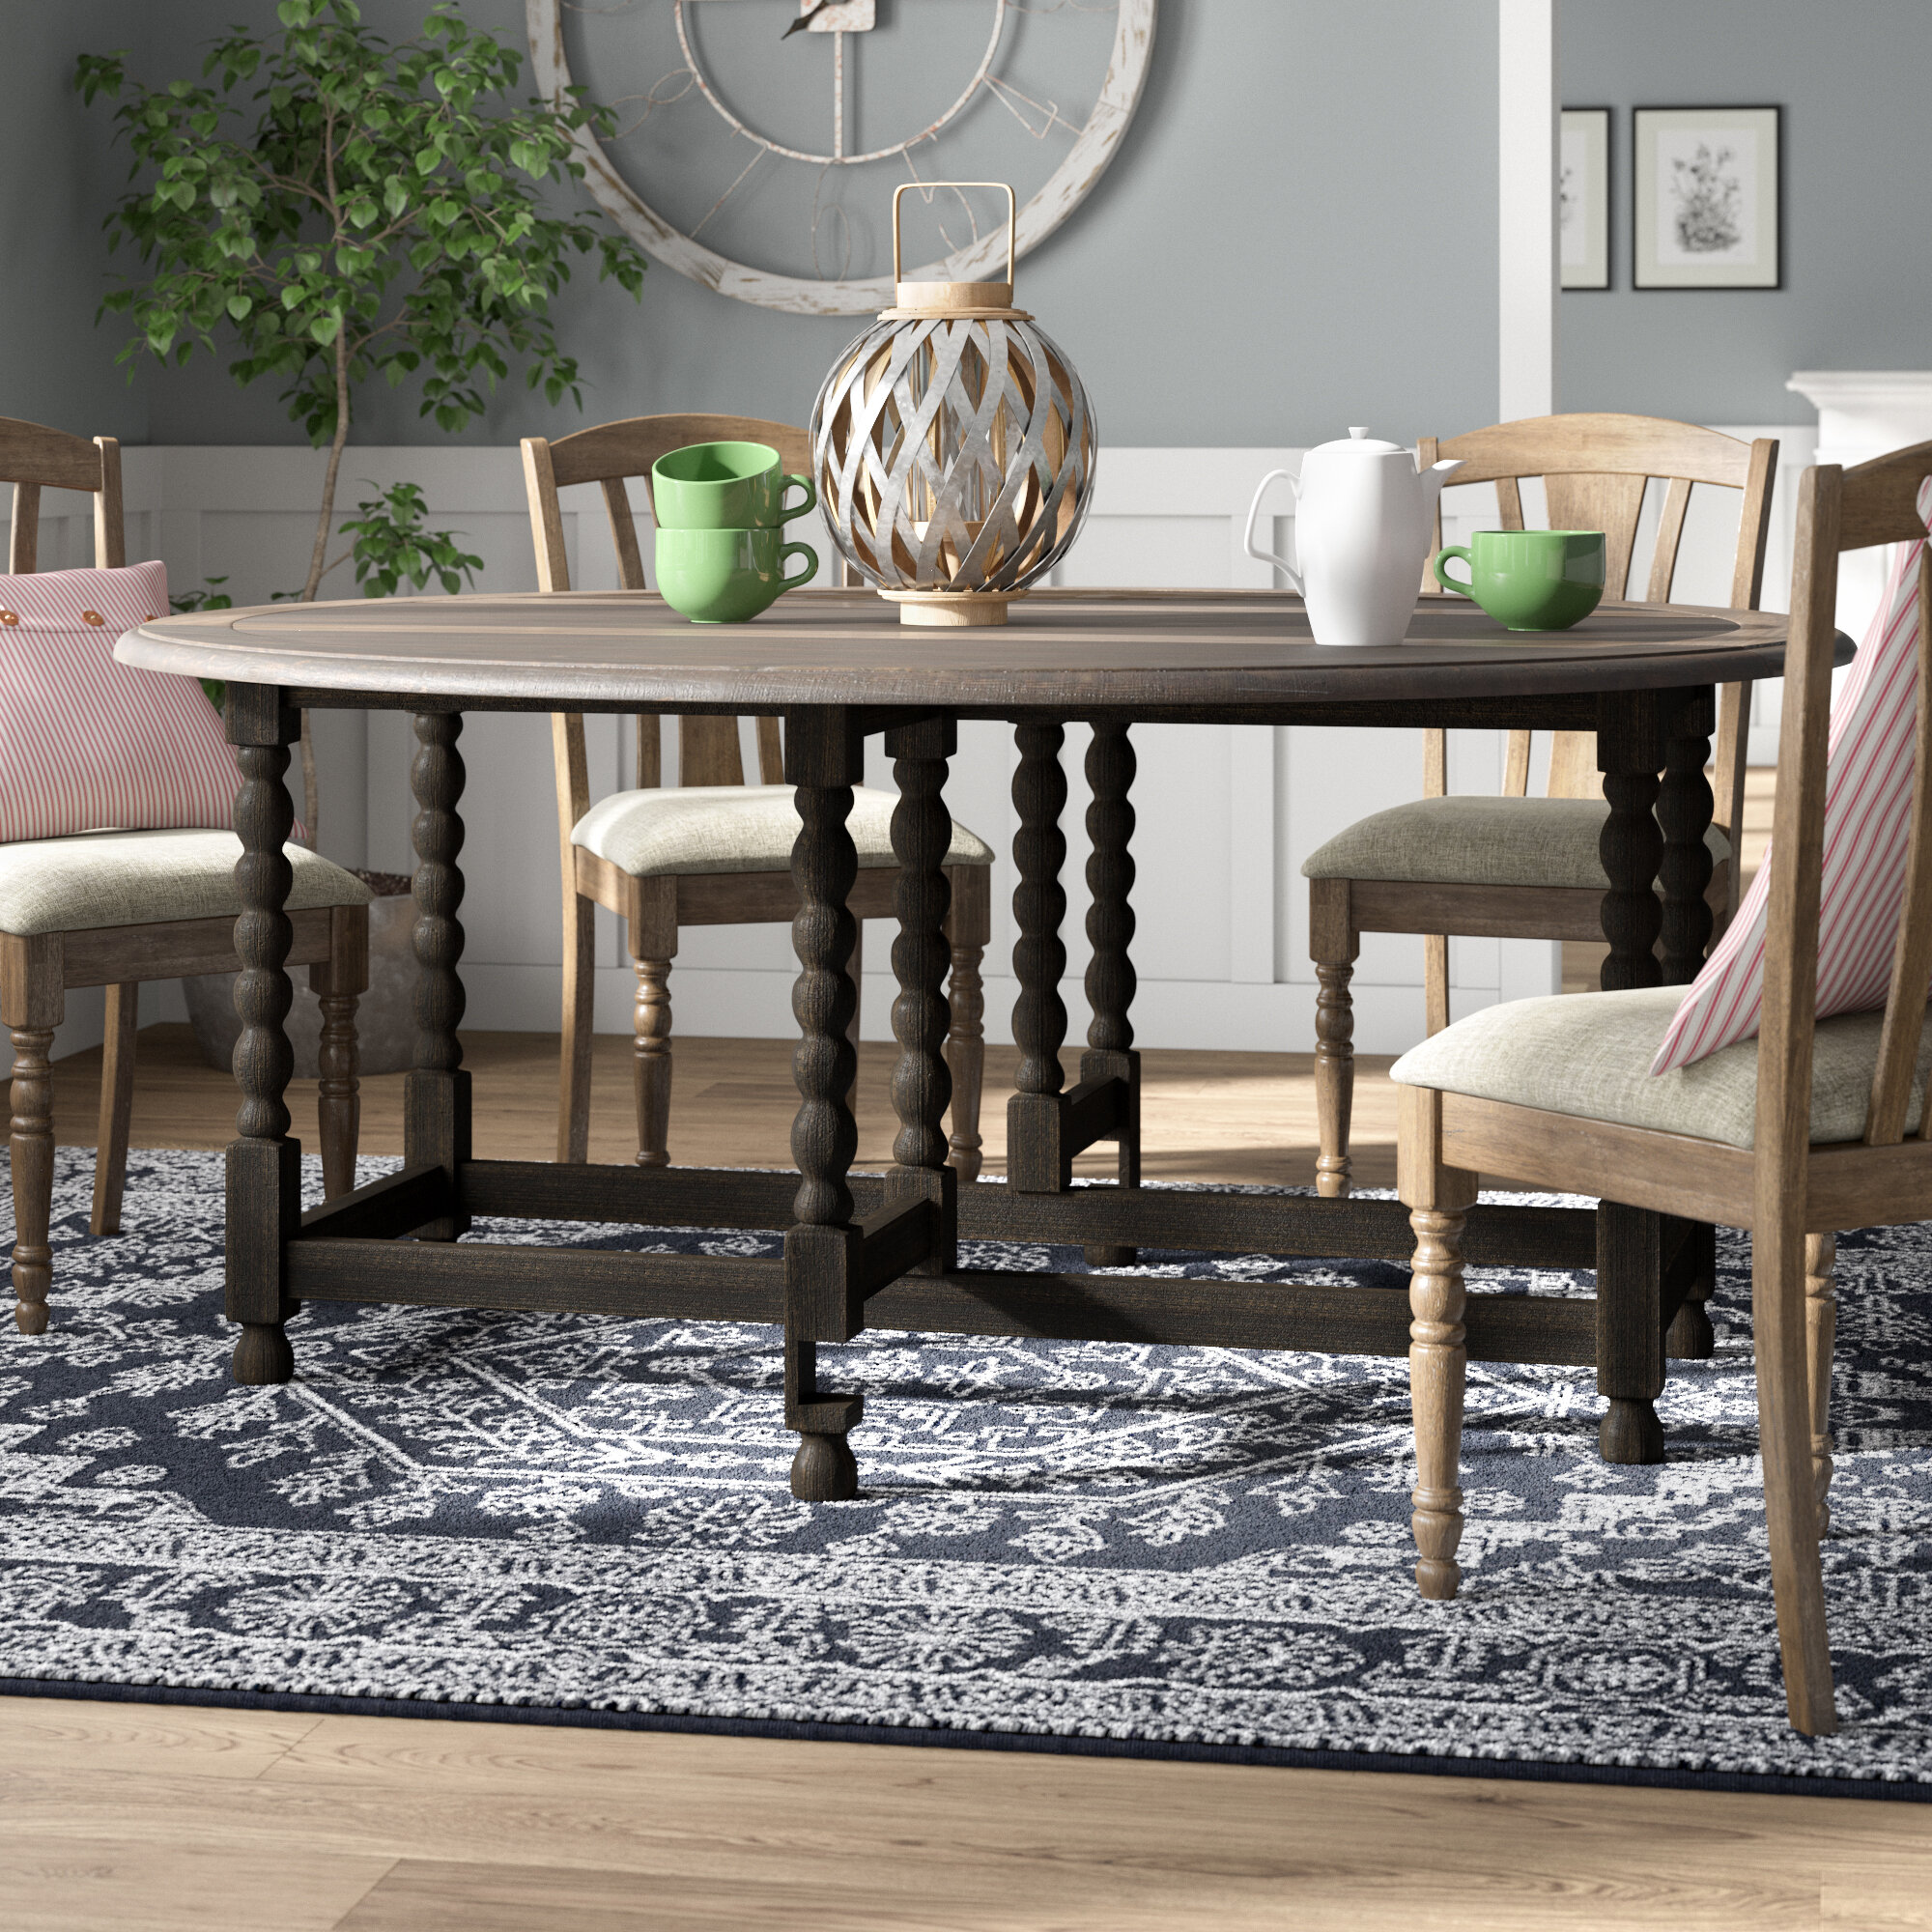 Ophelia Co Largent Drop Leaf Dining Table Reviews Wayfair